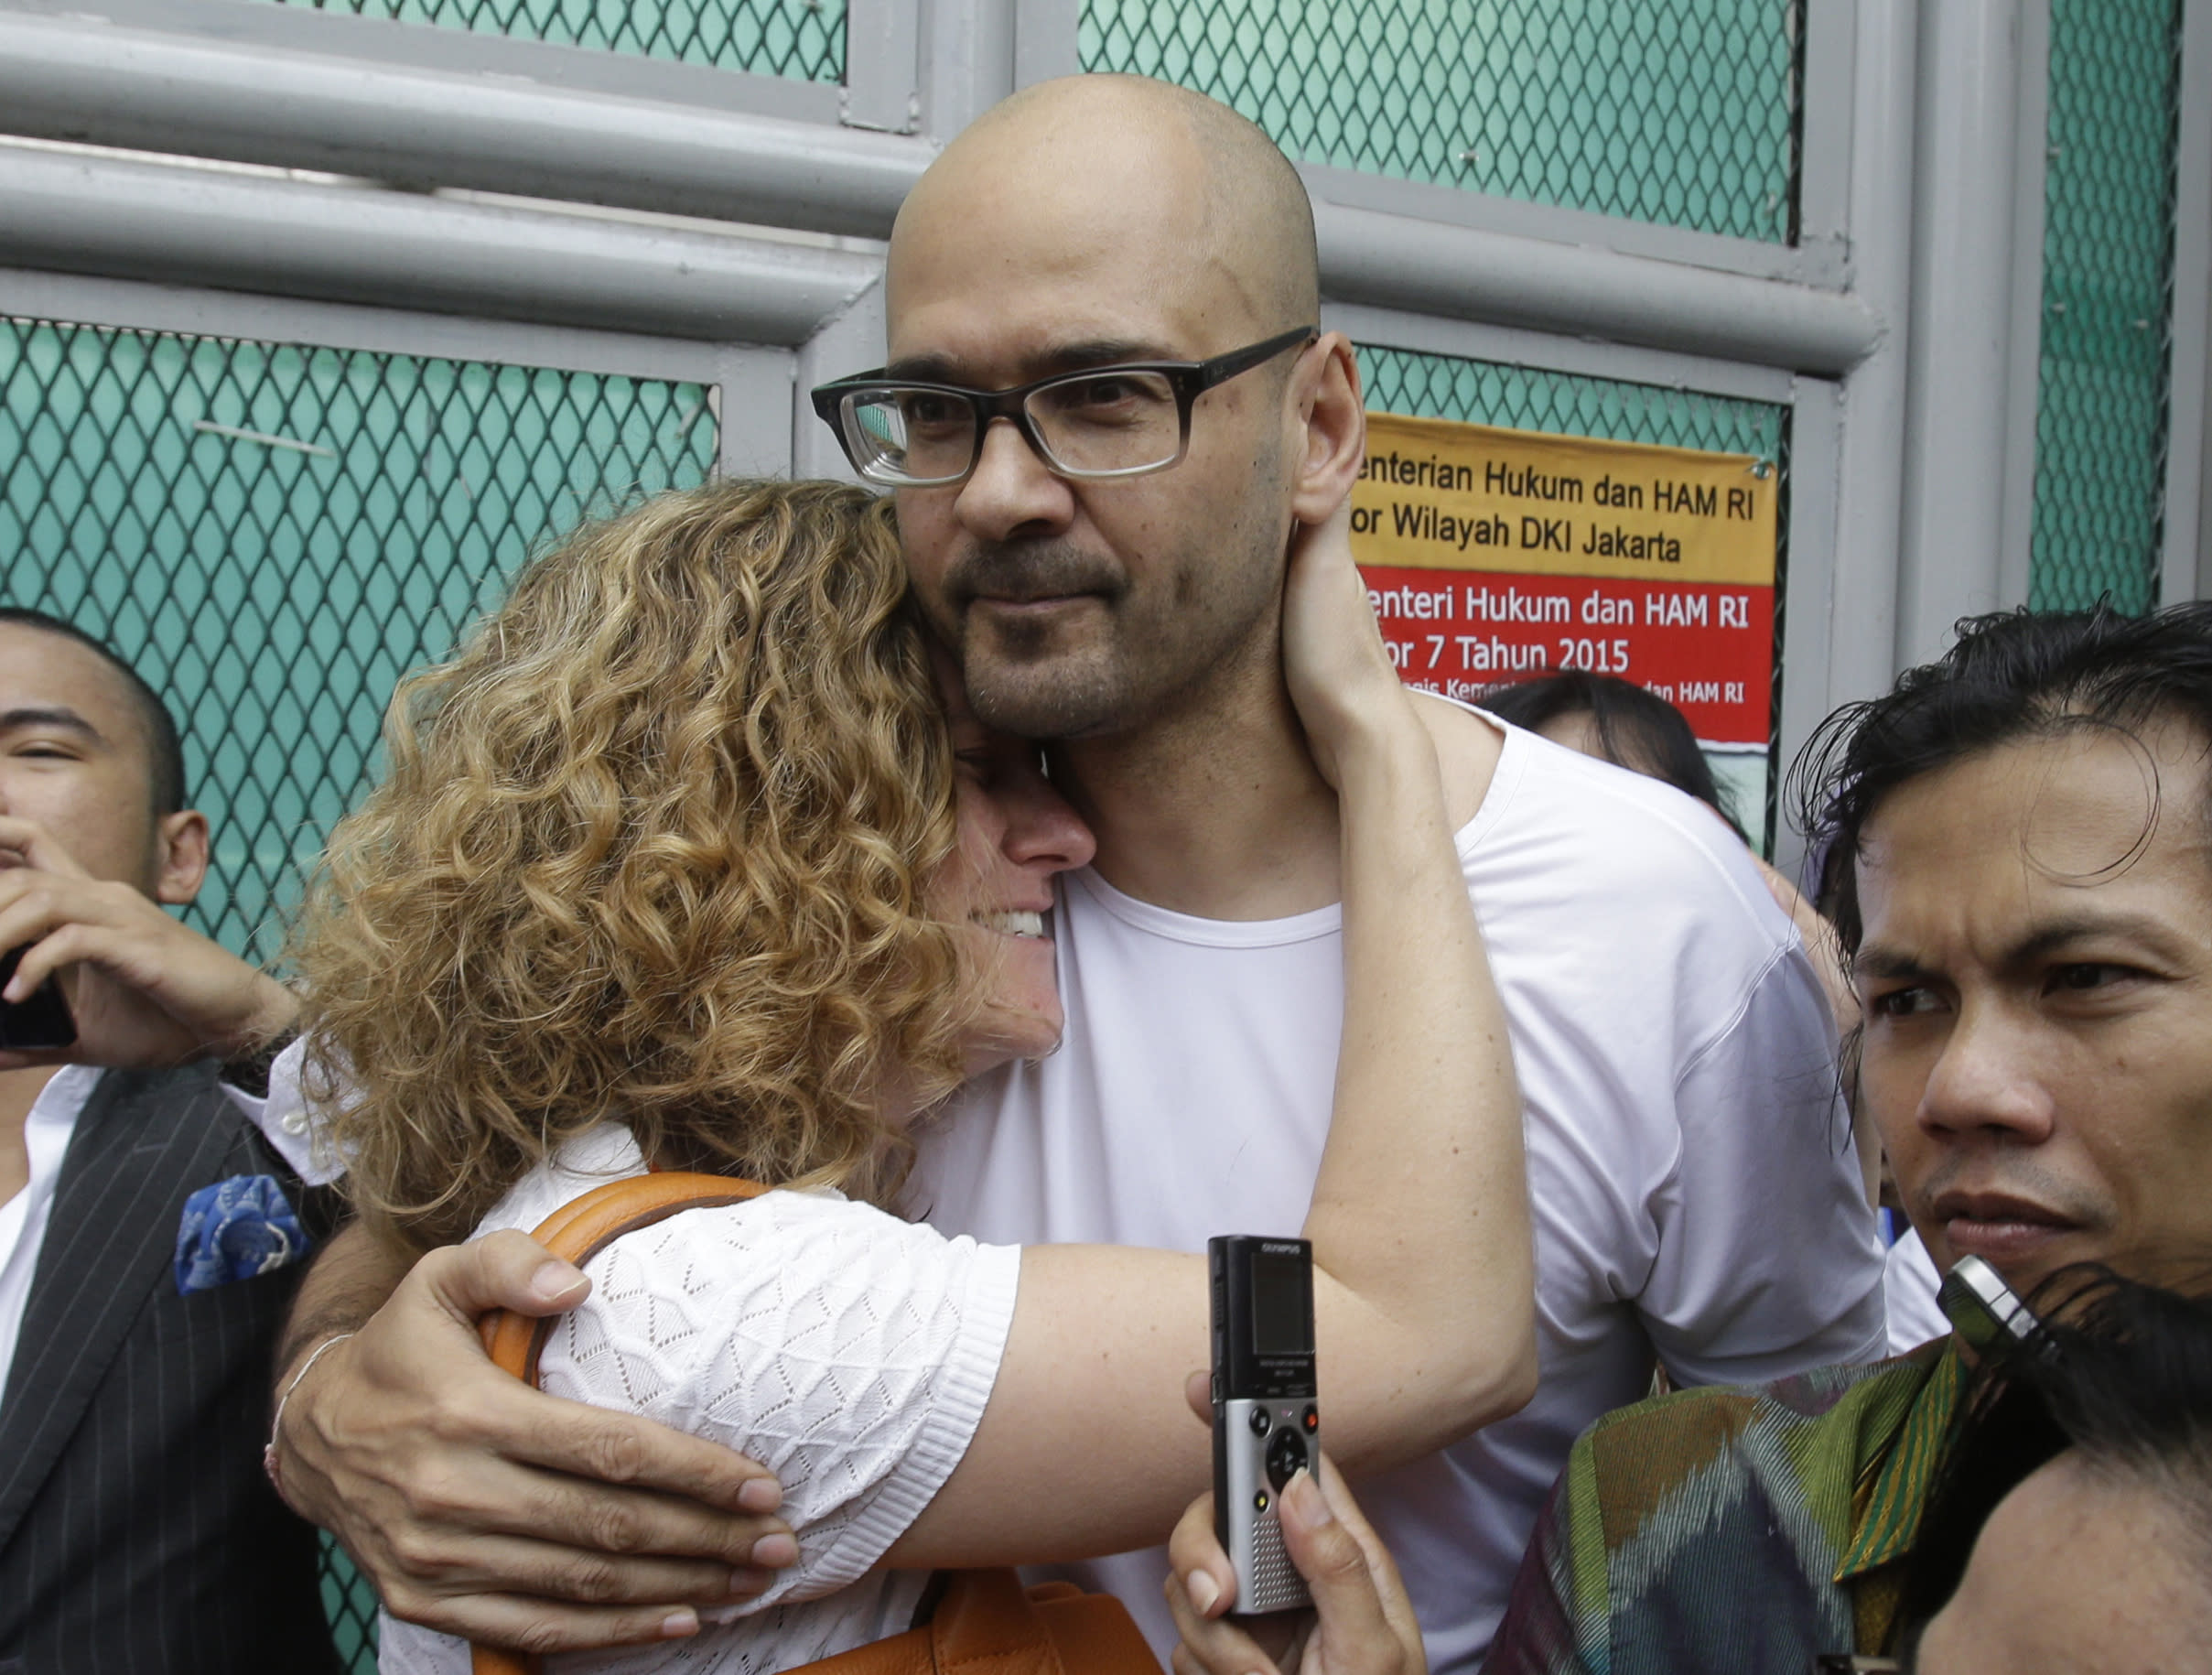 Indonesia frees Canadian convicted in child sex case